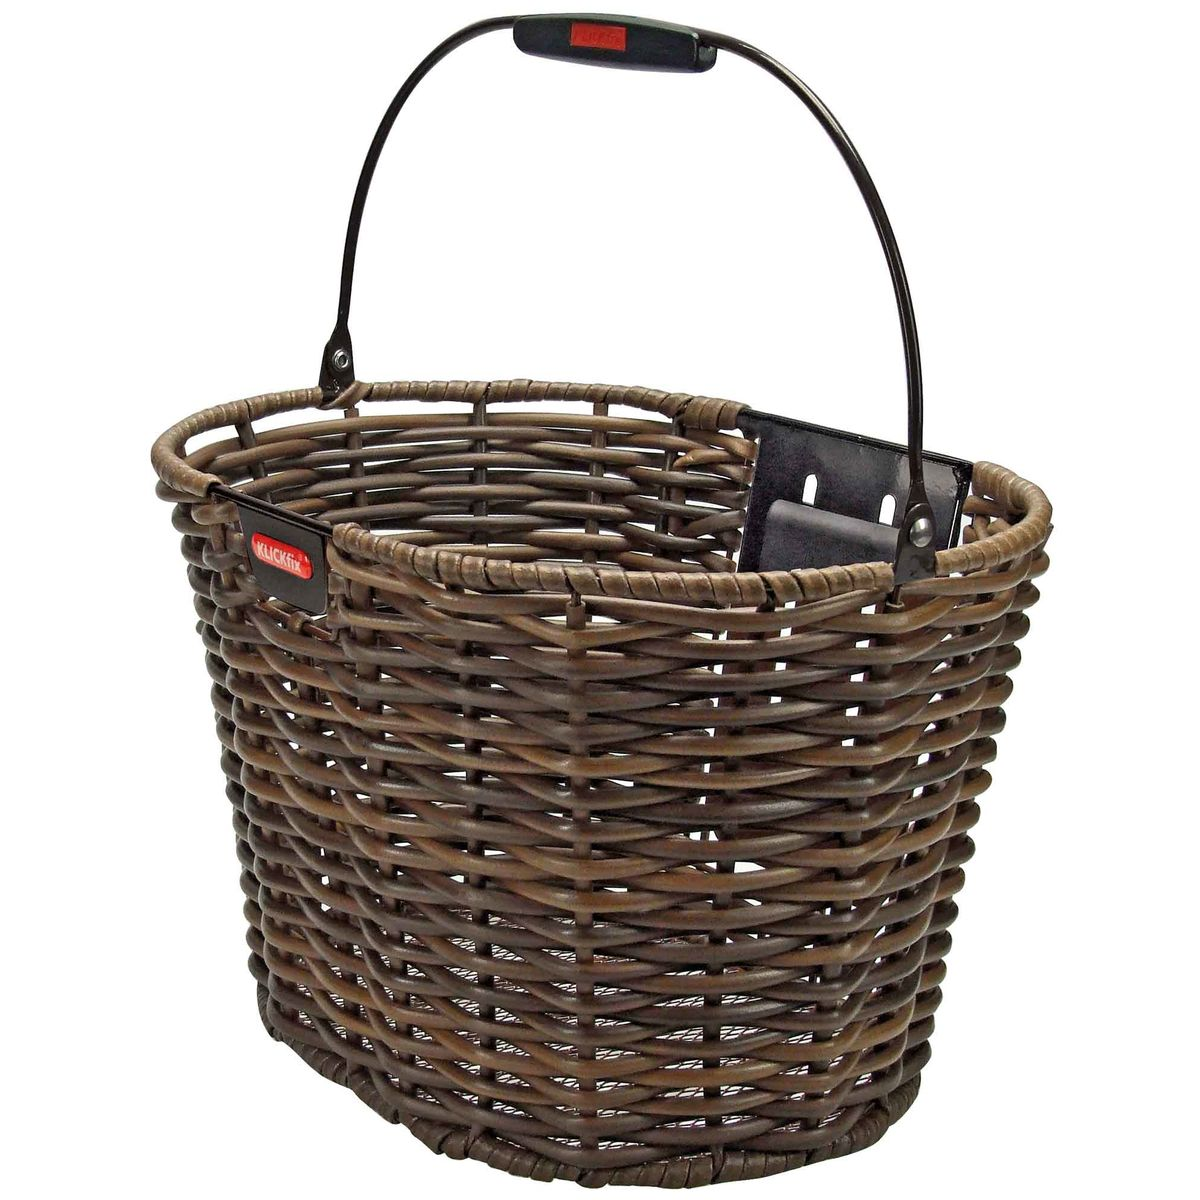 STRUCTURA OVAL front bicycle basket